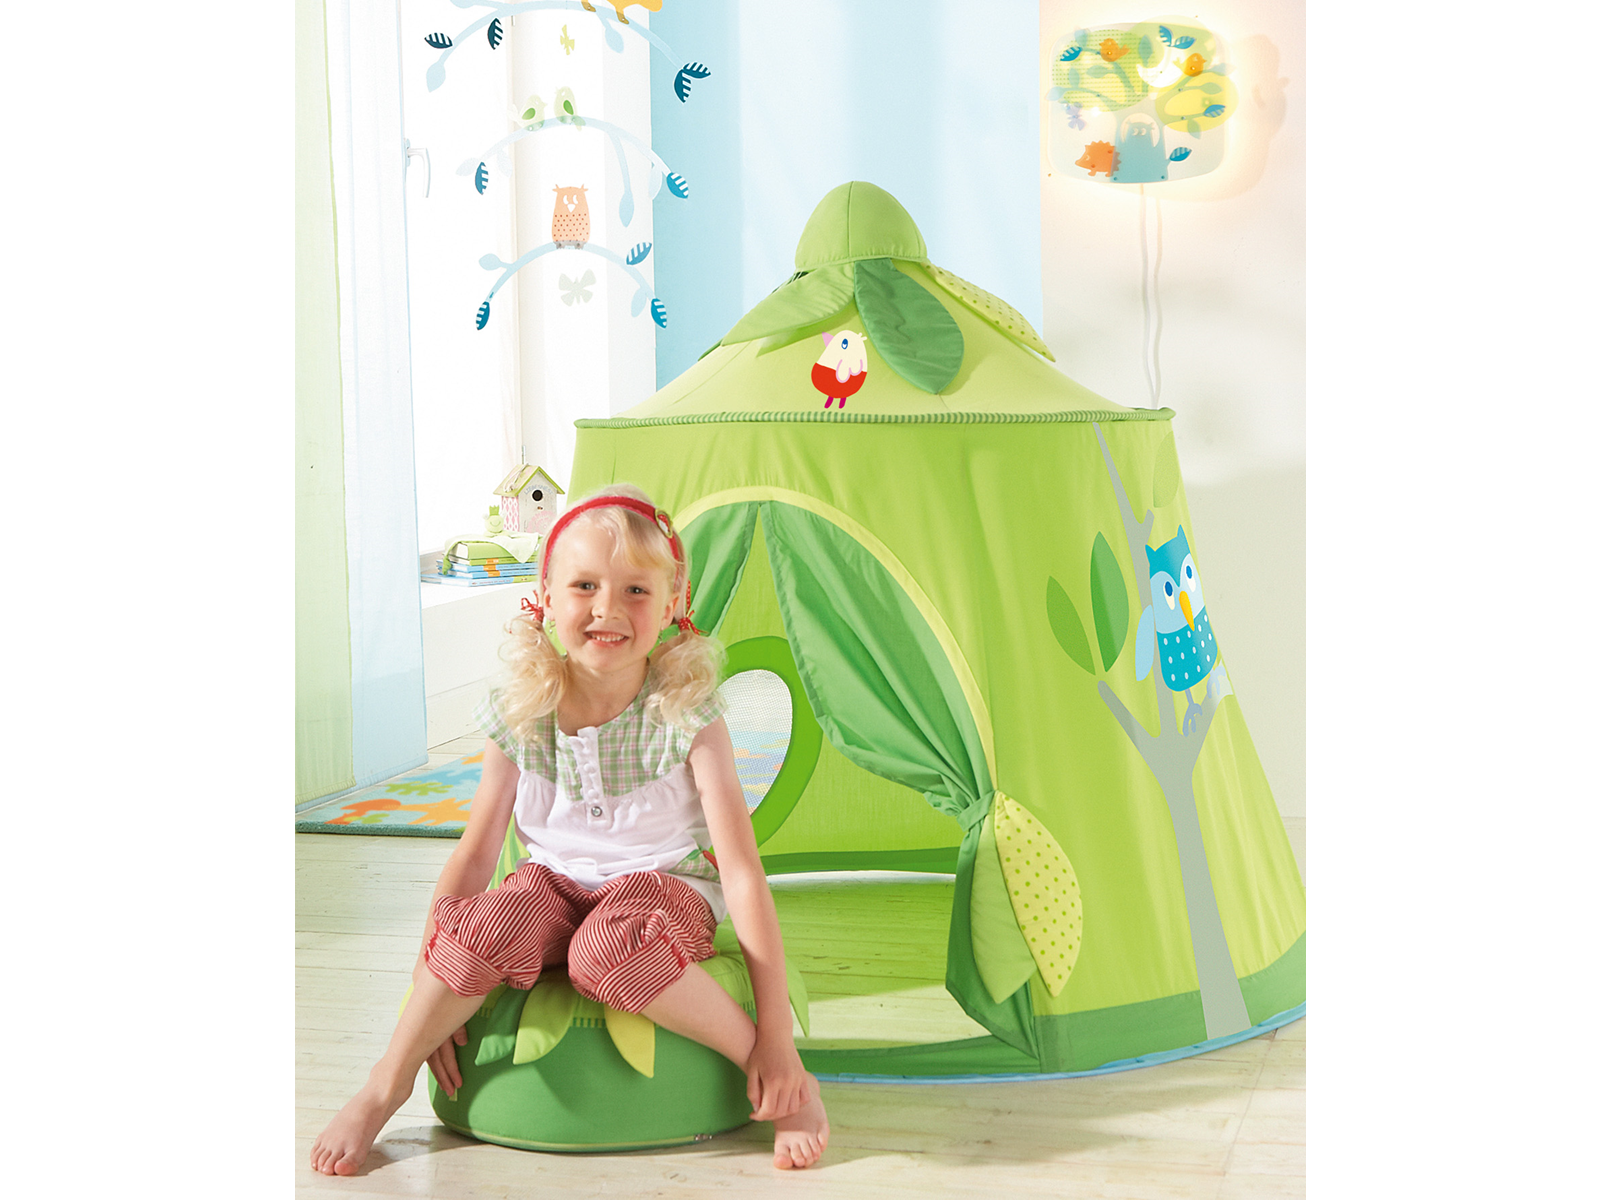 Haba Magic Forest Play Tent - Buy Online - Playhouse of Dreams ...  sc 1 st  Playhouse of Dreams & haba u2013 Playhouse of Dreams